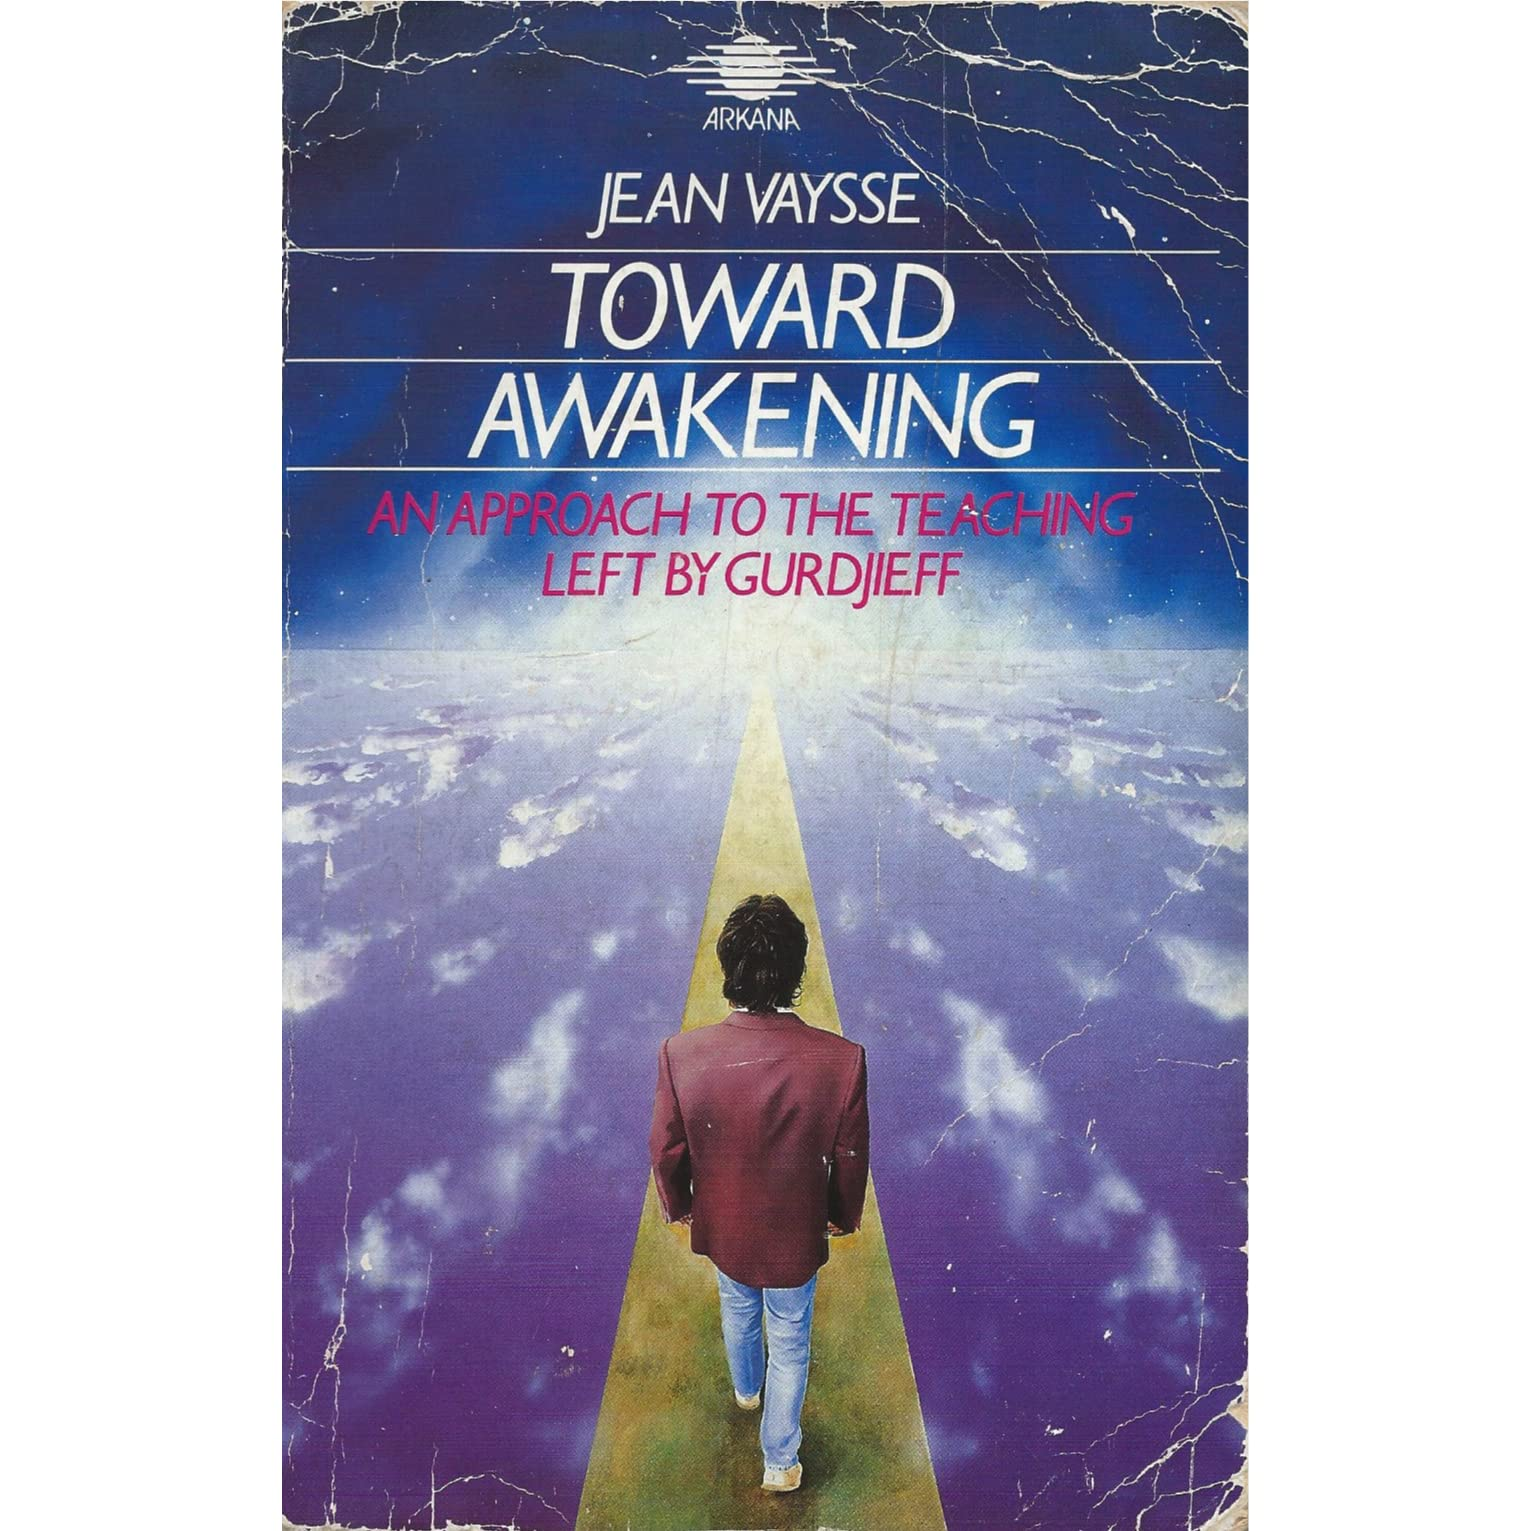 Toward Awakening: An Approach to the Teaching Left by